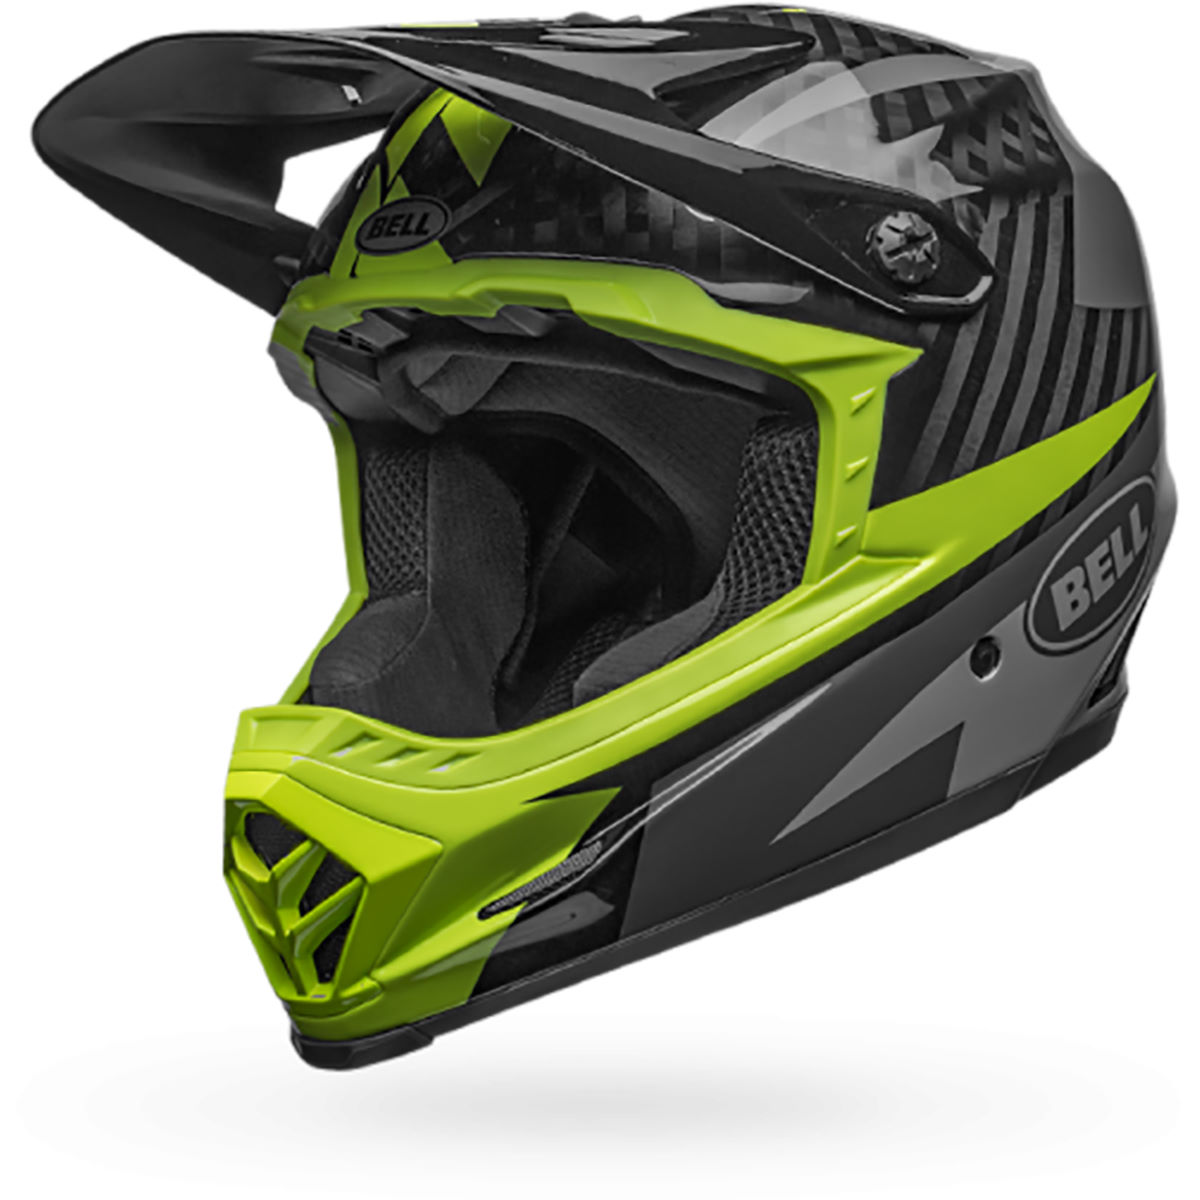 Casque VTT Bell Full-9 - XL/XXL Gloss Smoke/Shadow/P